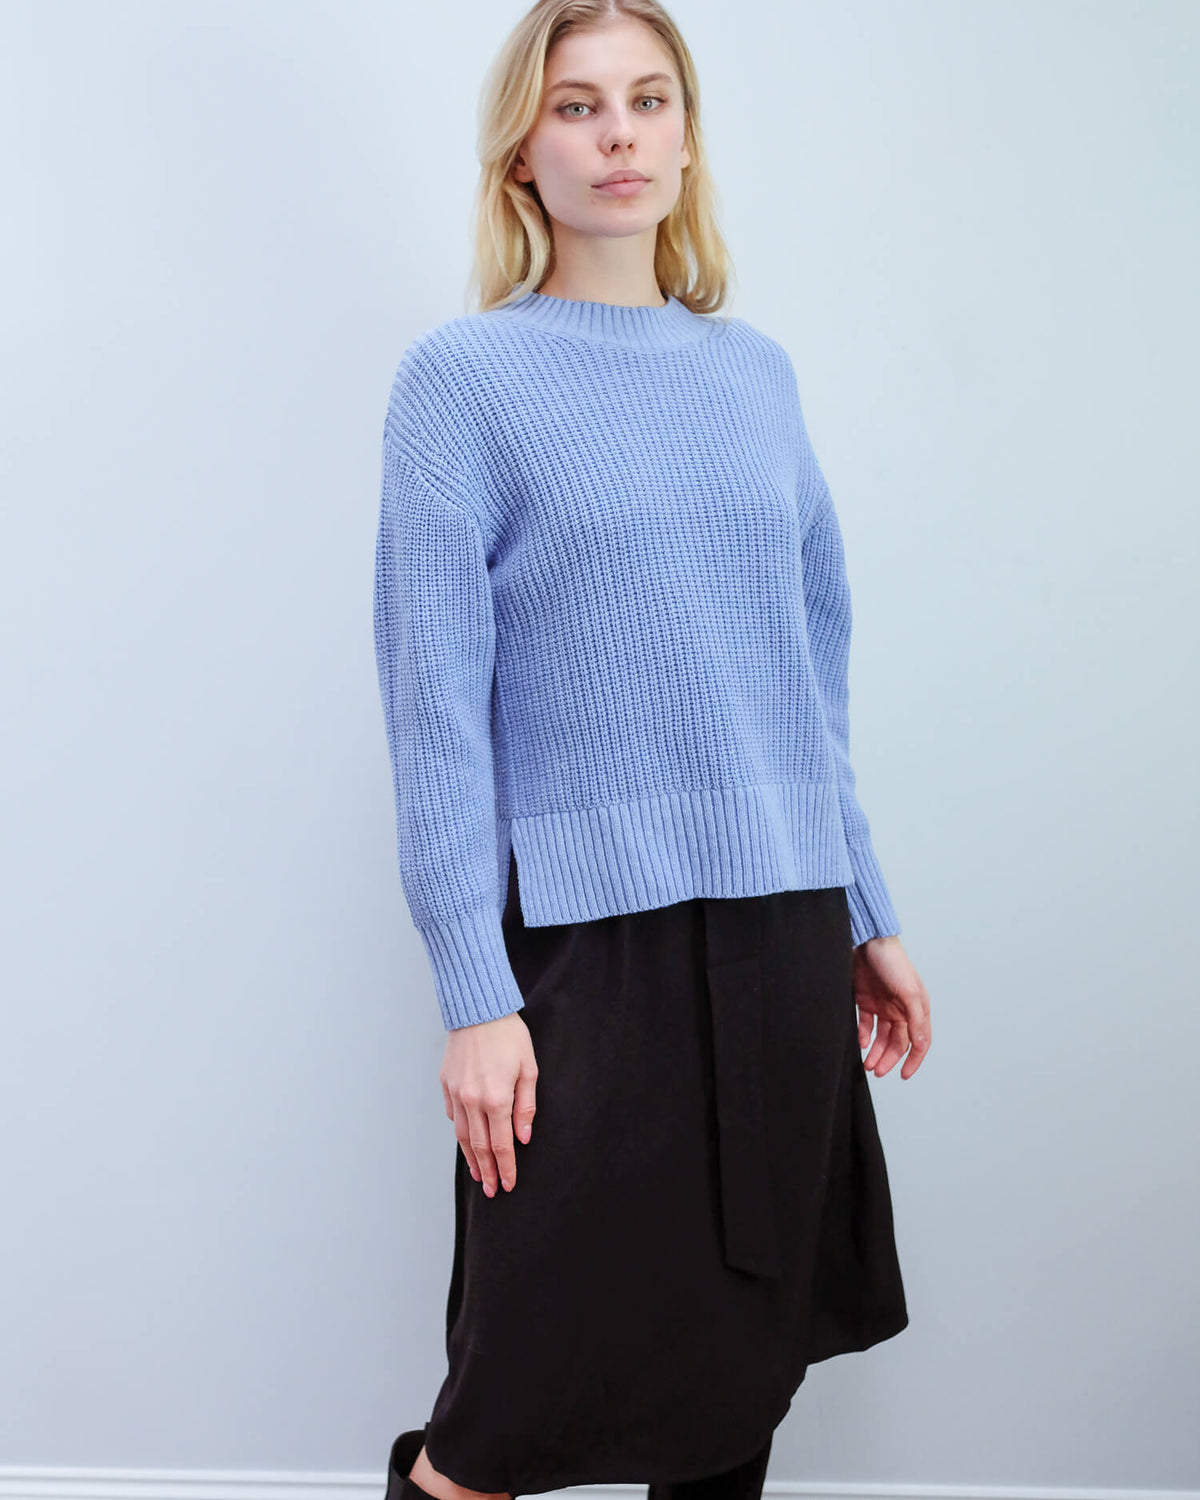 SLF Bailey Knit in blue melange